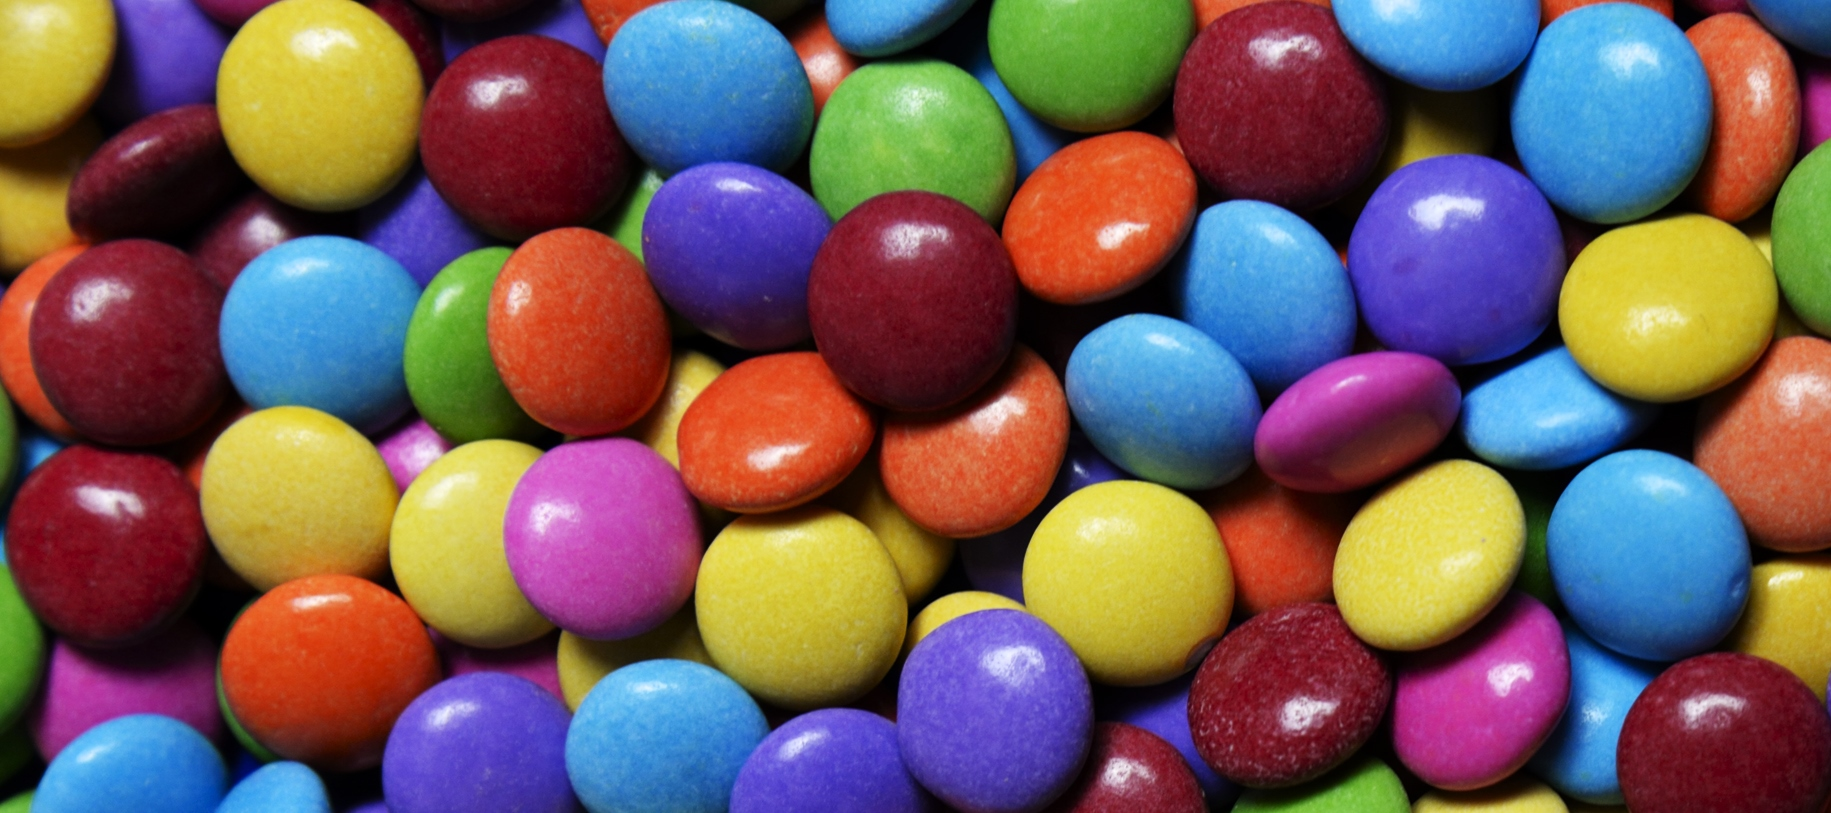 bigstock Colorful bonbons 86299325